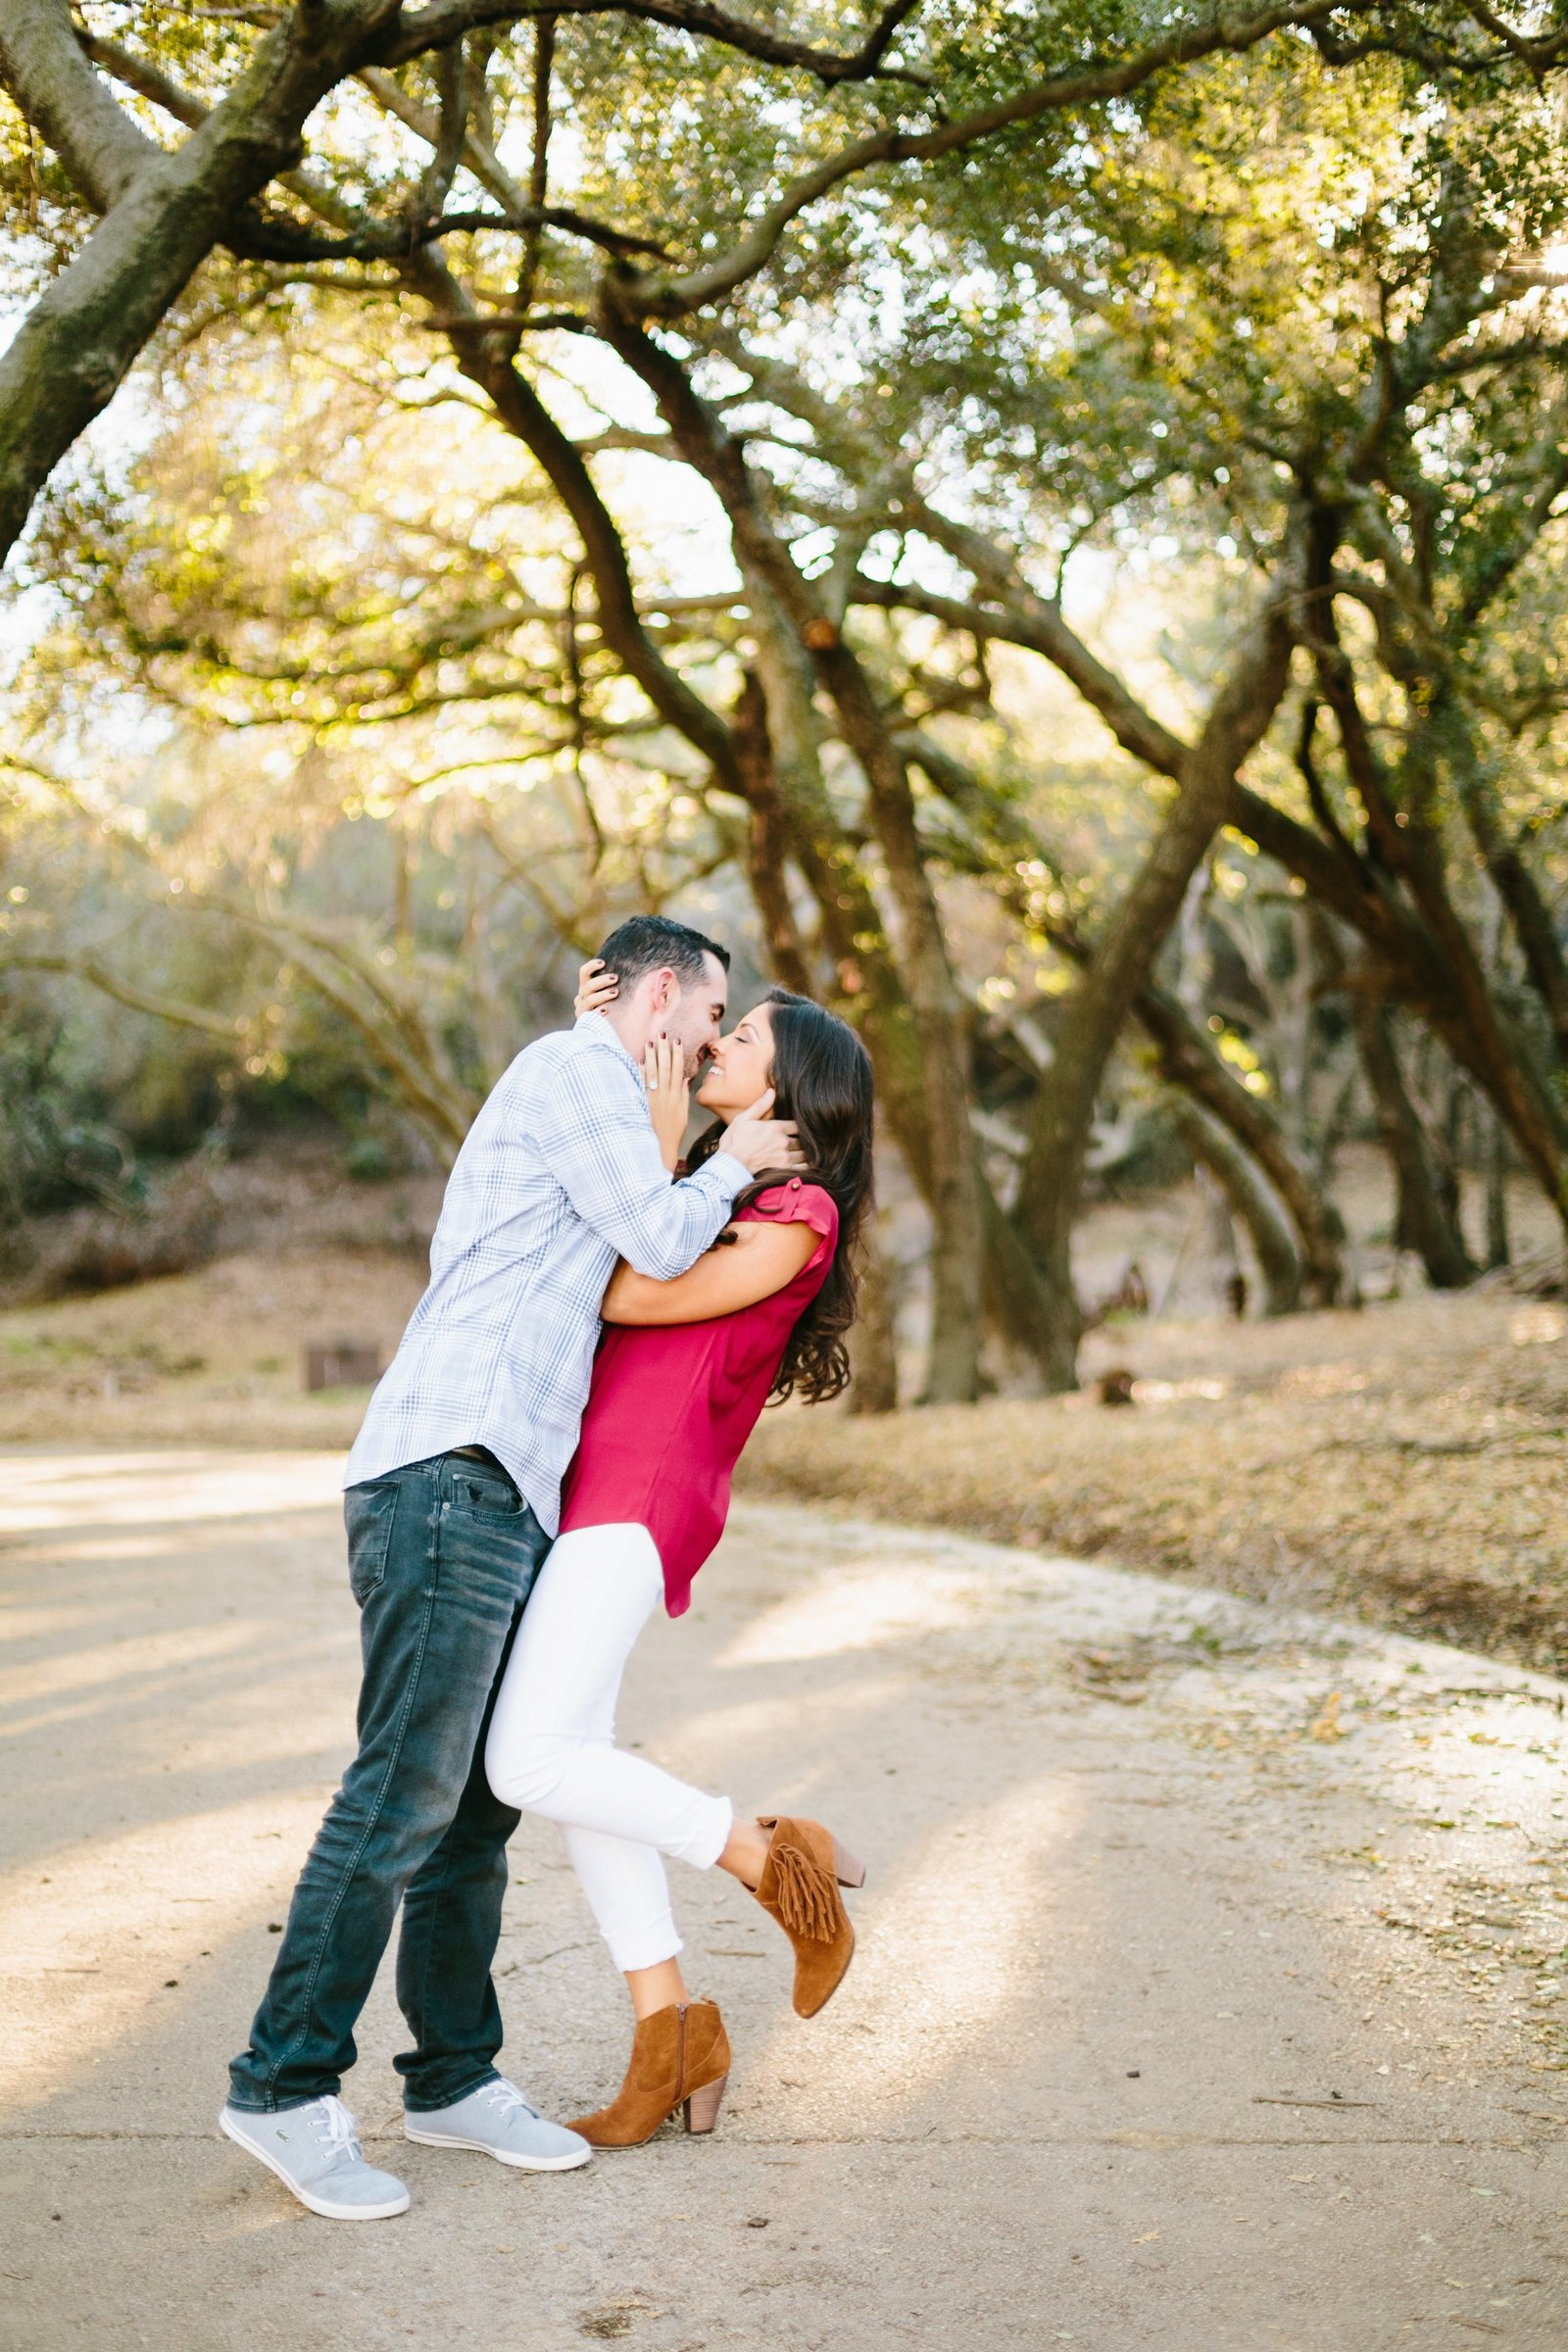 Engagement Photos-Jodee Debes Photography-157